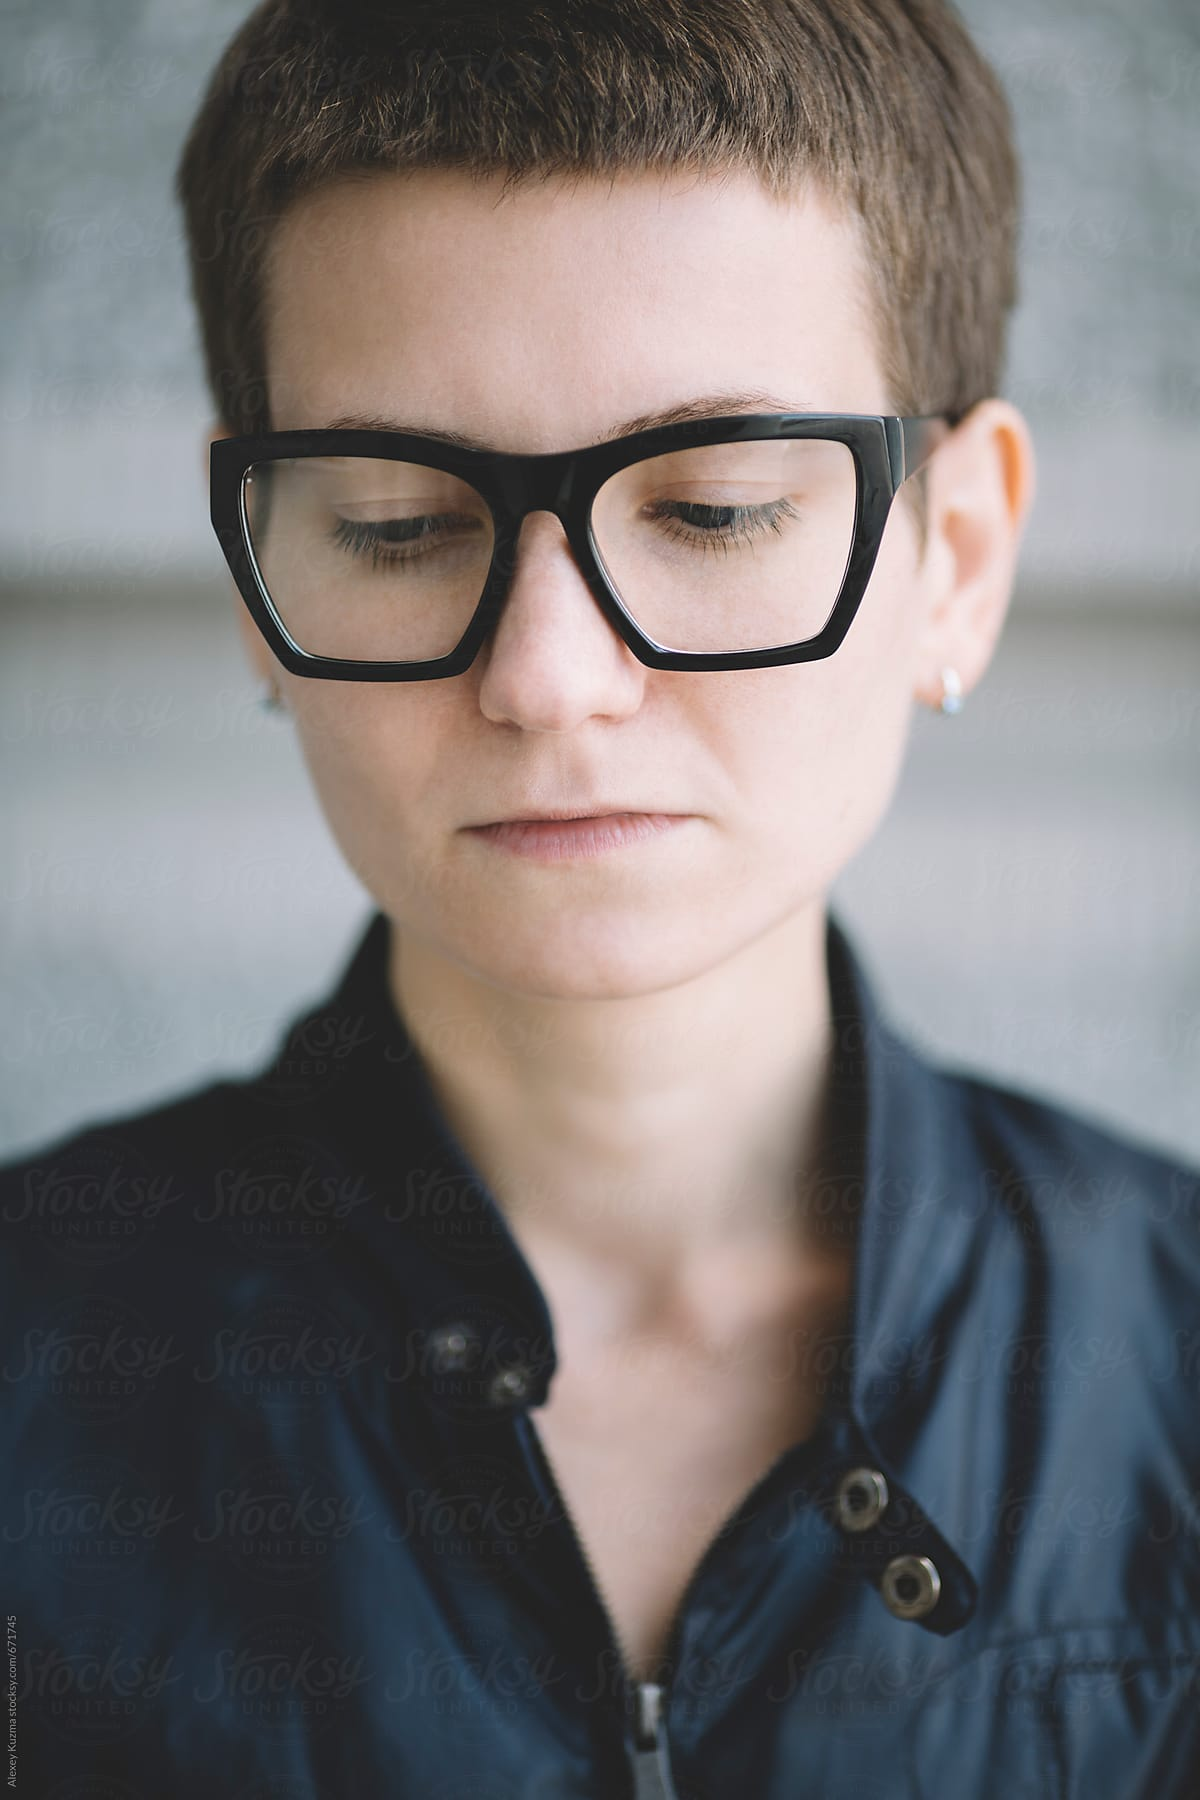 closeup of young lesbian woman with glasses and short hair